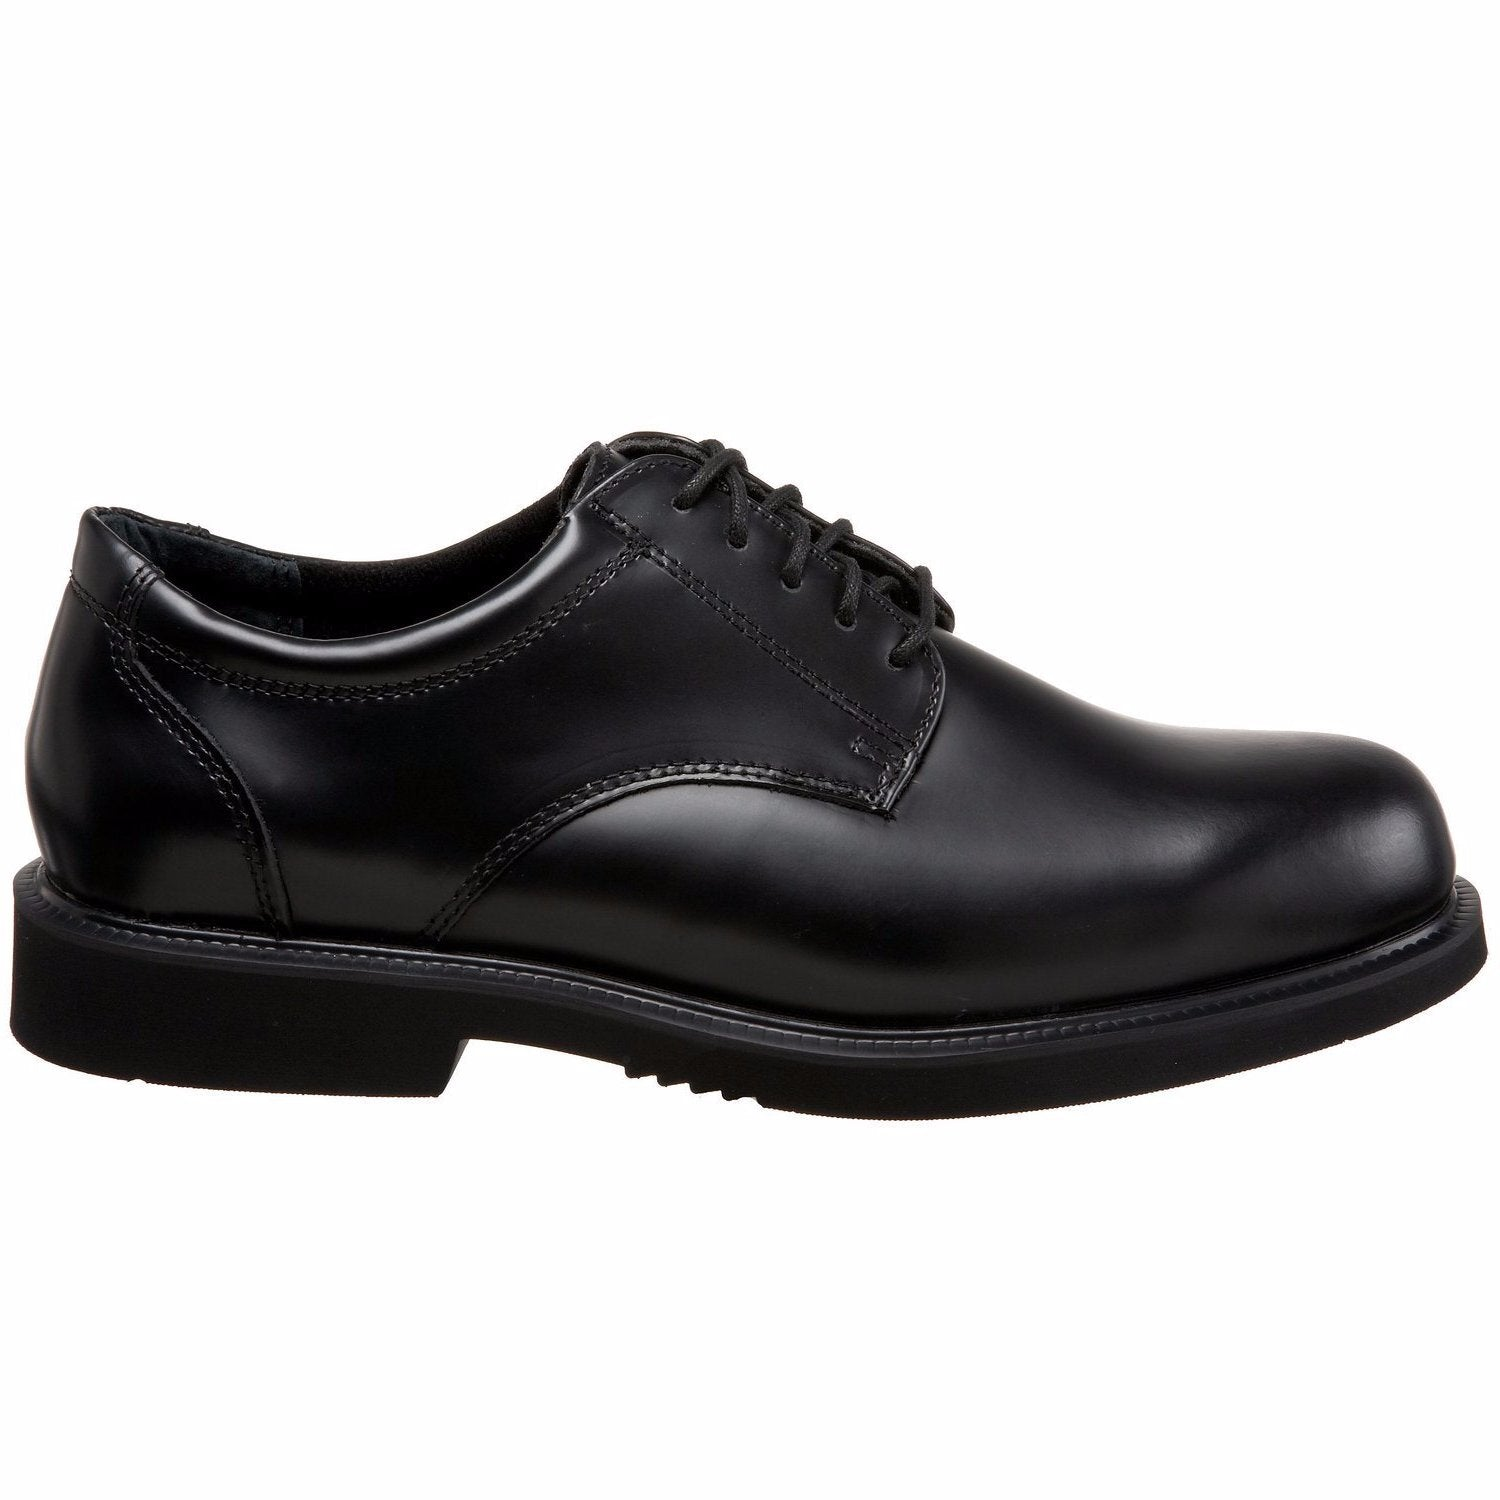 Academy Oxford - Black